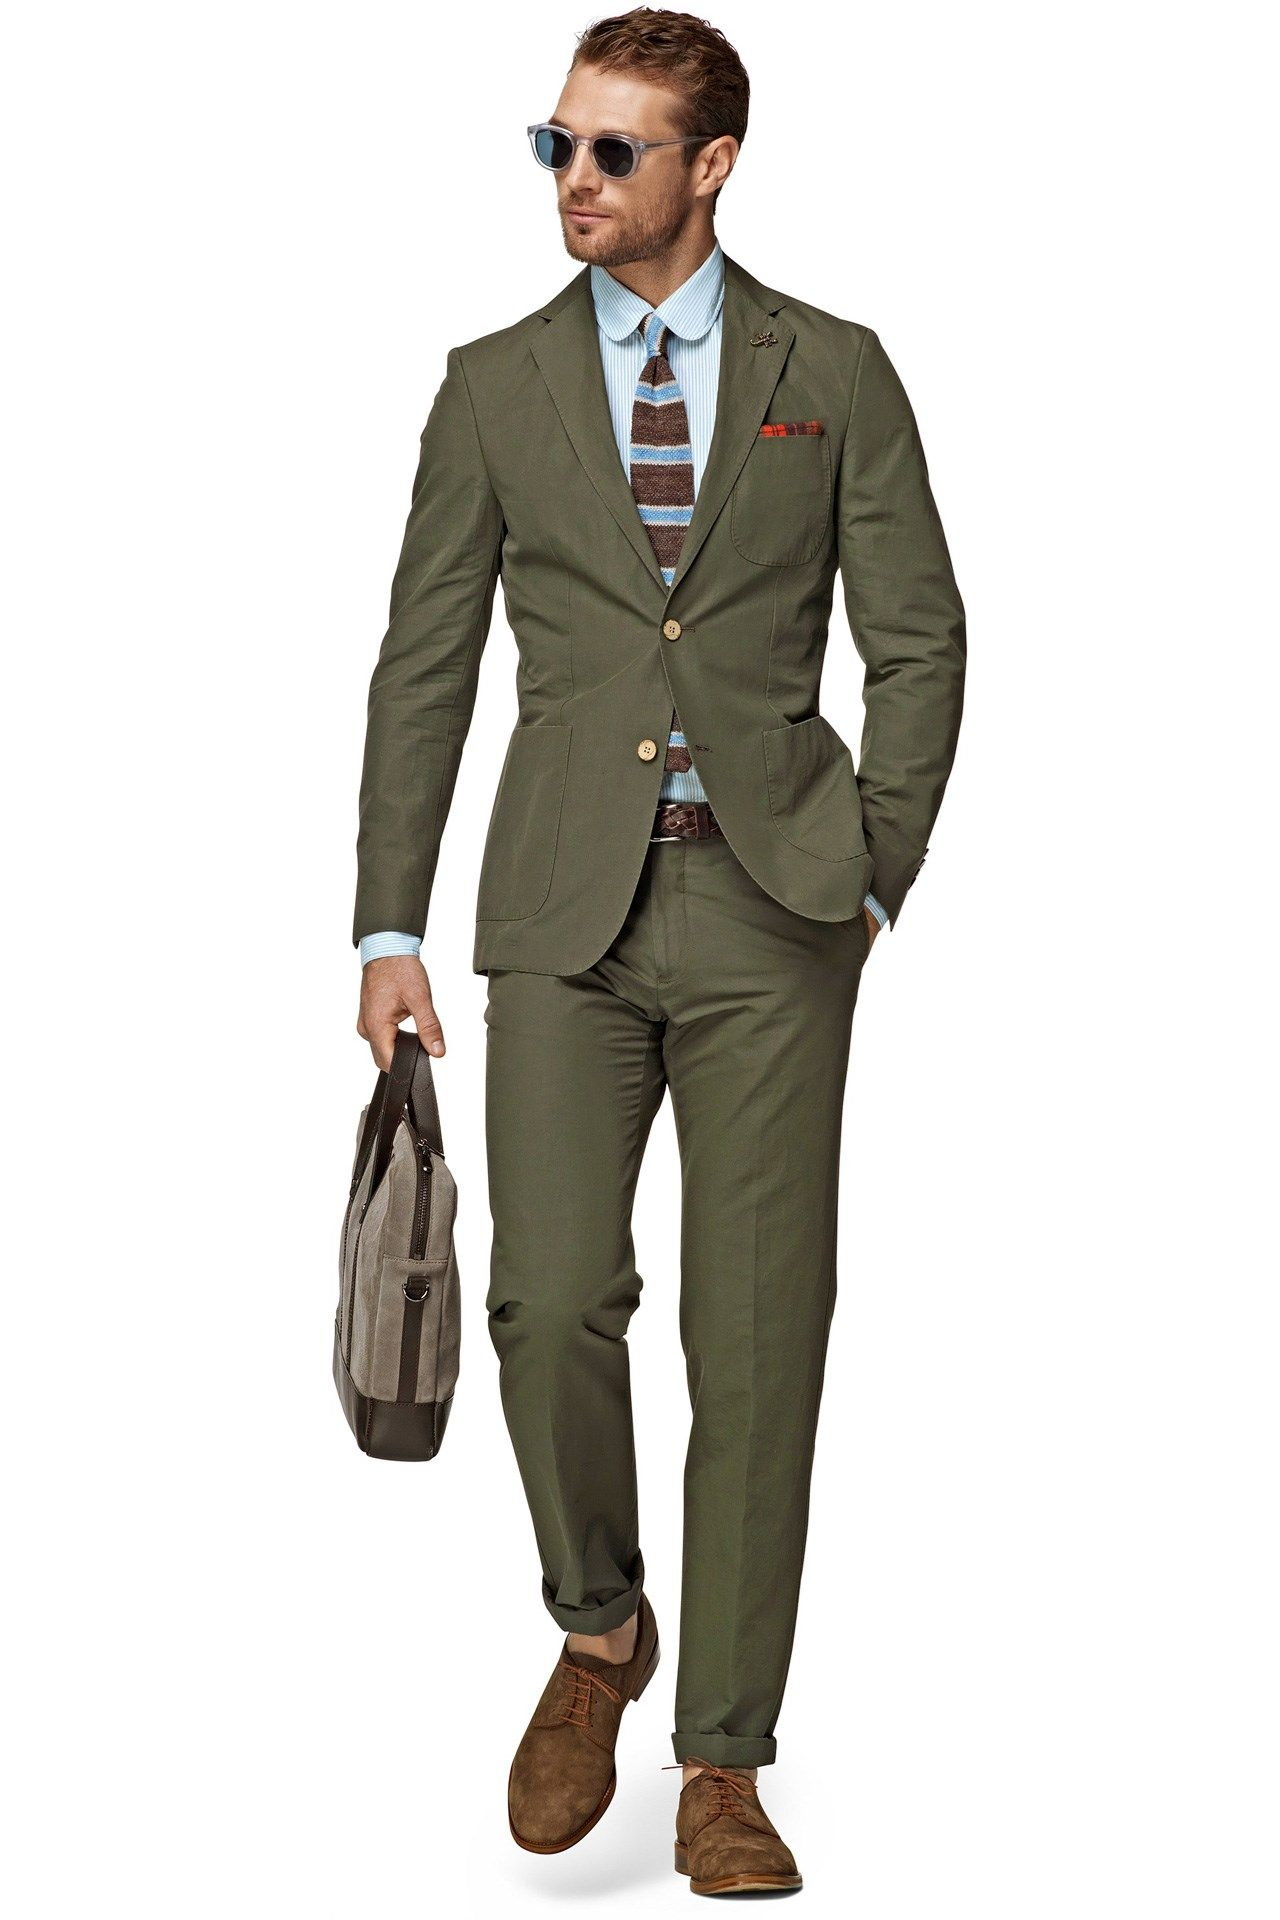 olive green colored suit cut from a lightweight cotton-linen blend ...